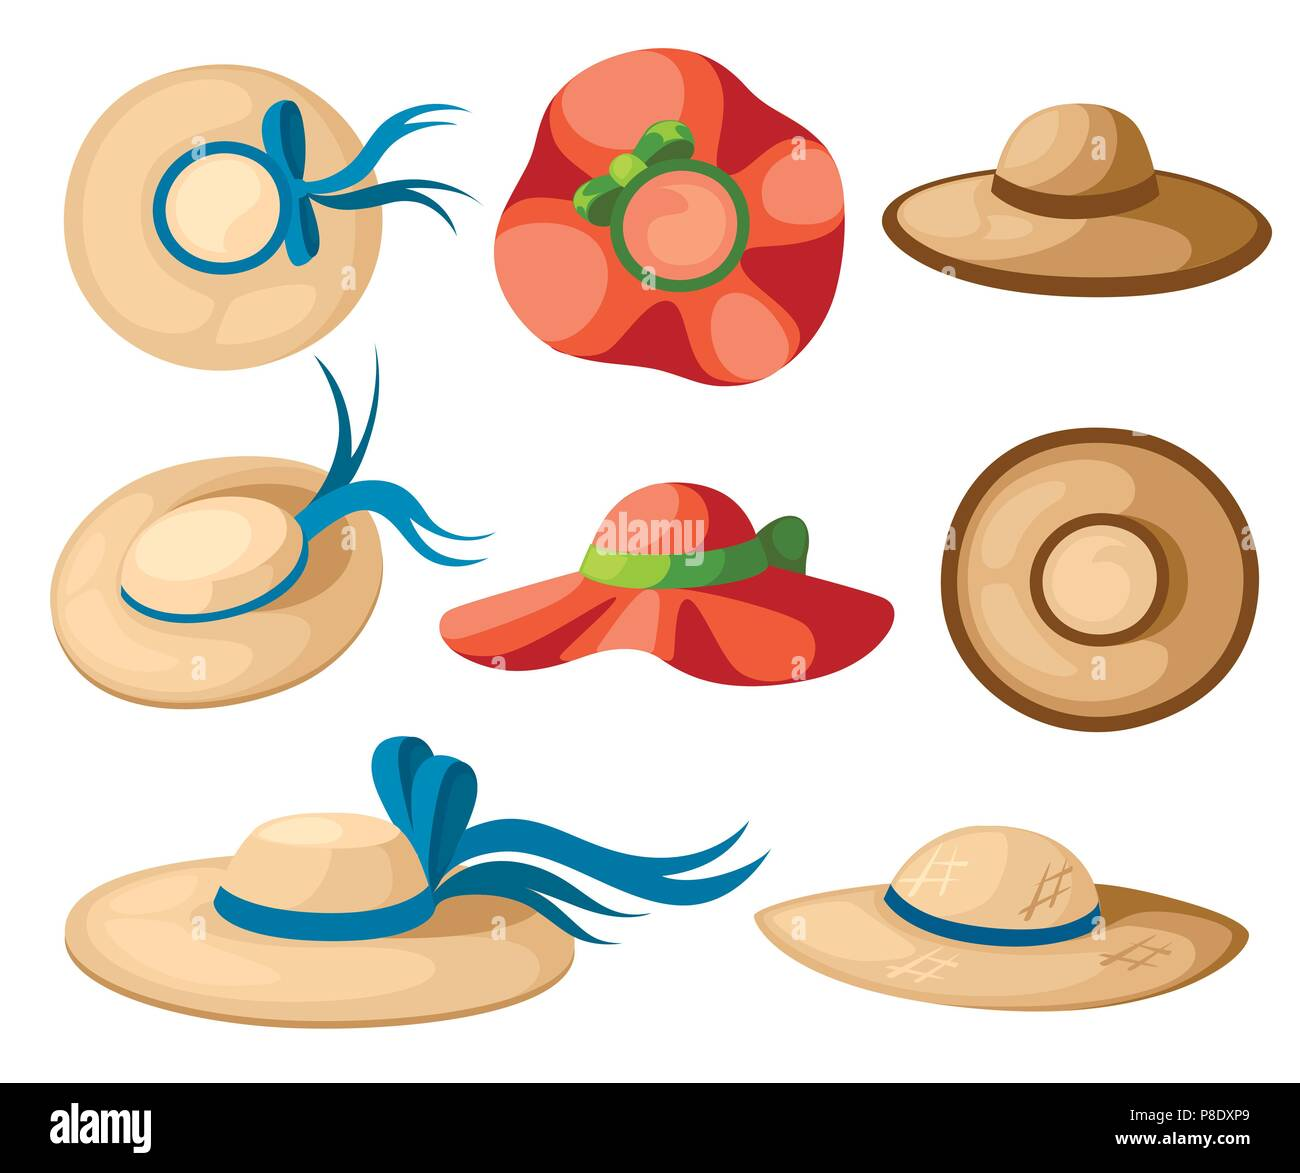 48bd08b2feff5 Women summer hat set. Colorful summer collection icon. Flat vector  illustration isolated on white background.